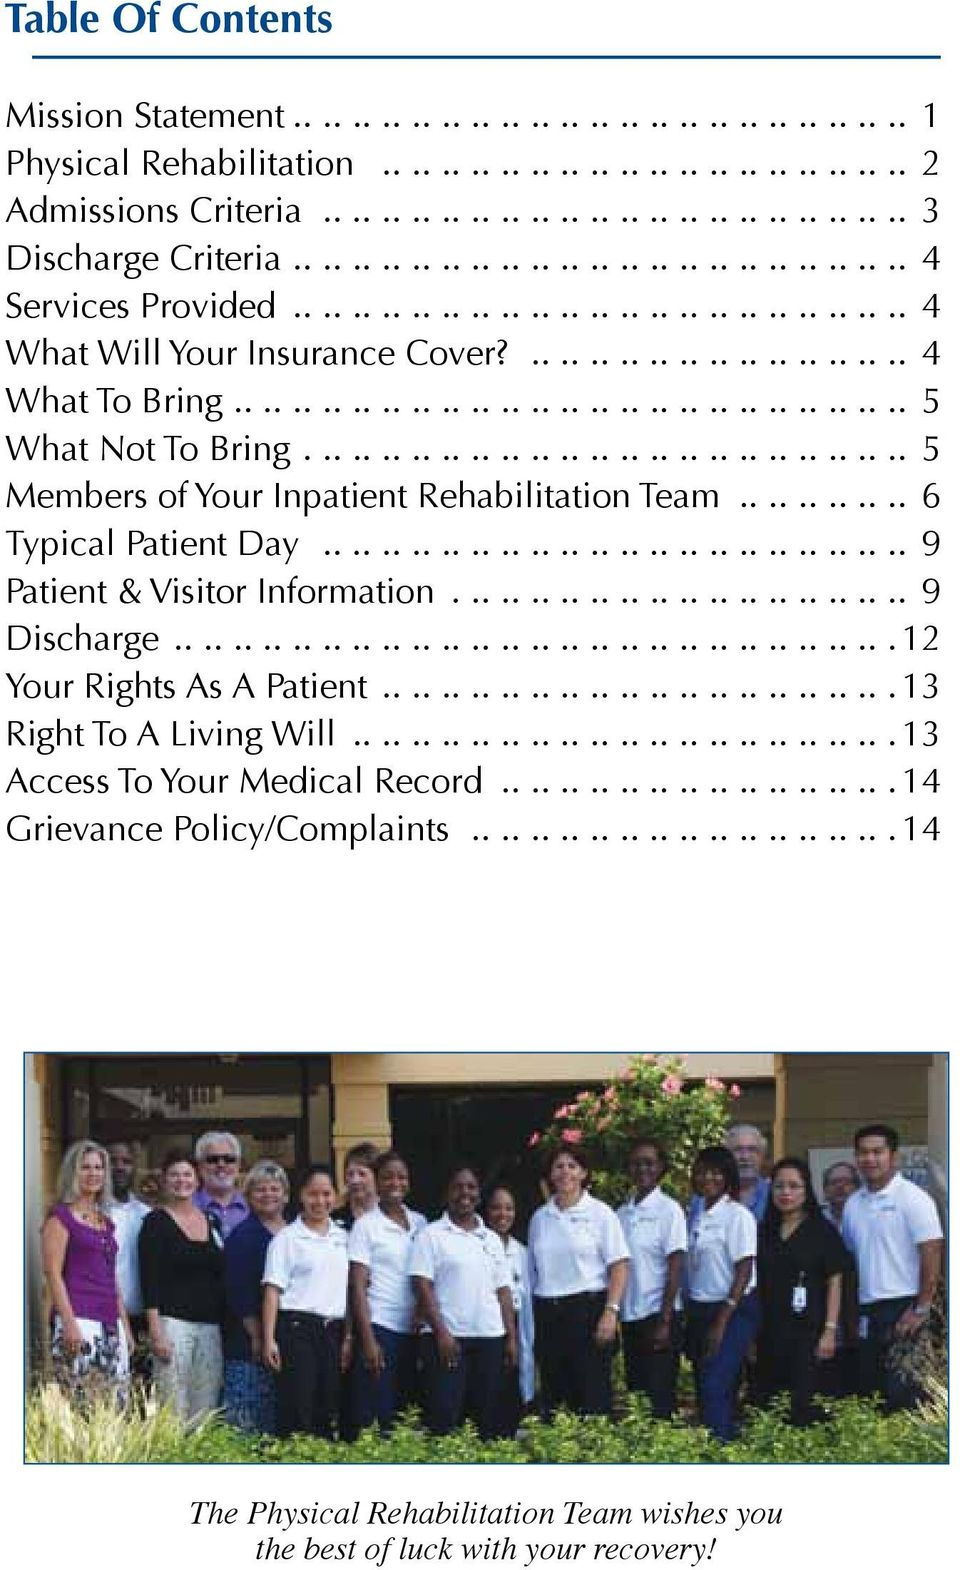 ........................................ 5 Members of Your Inpatient Rehabilitation Team............ 6 Typical Patient Day........................................ 9 Patient & Visitor Information.